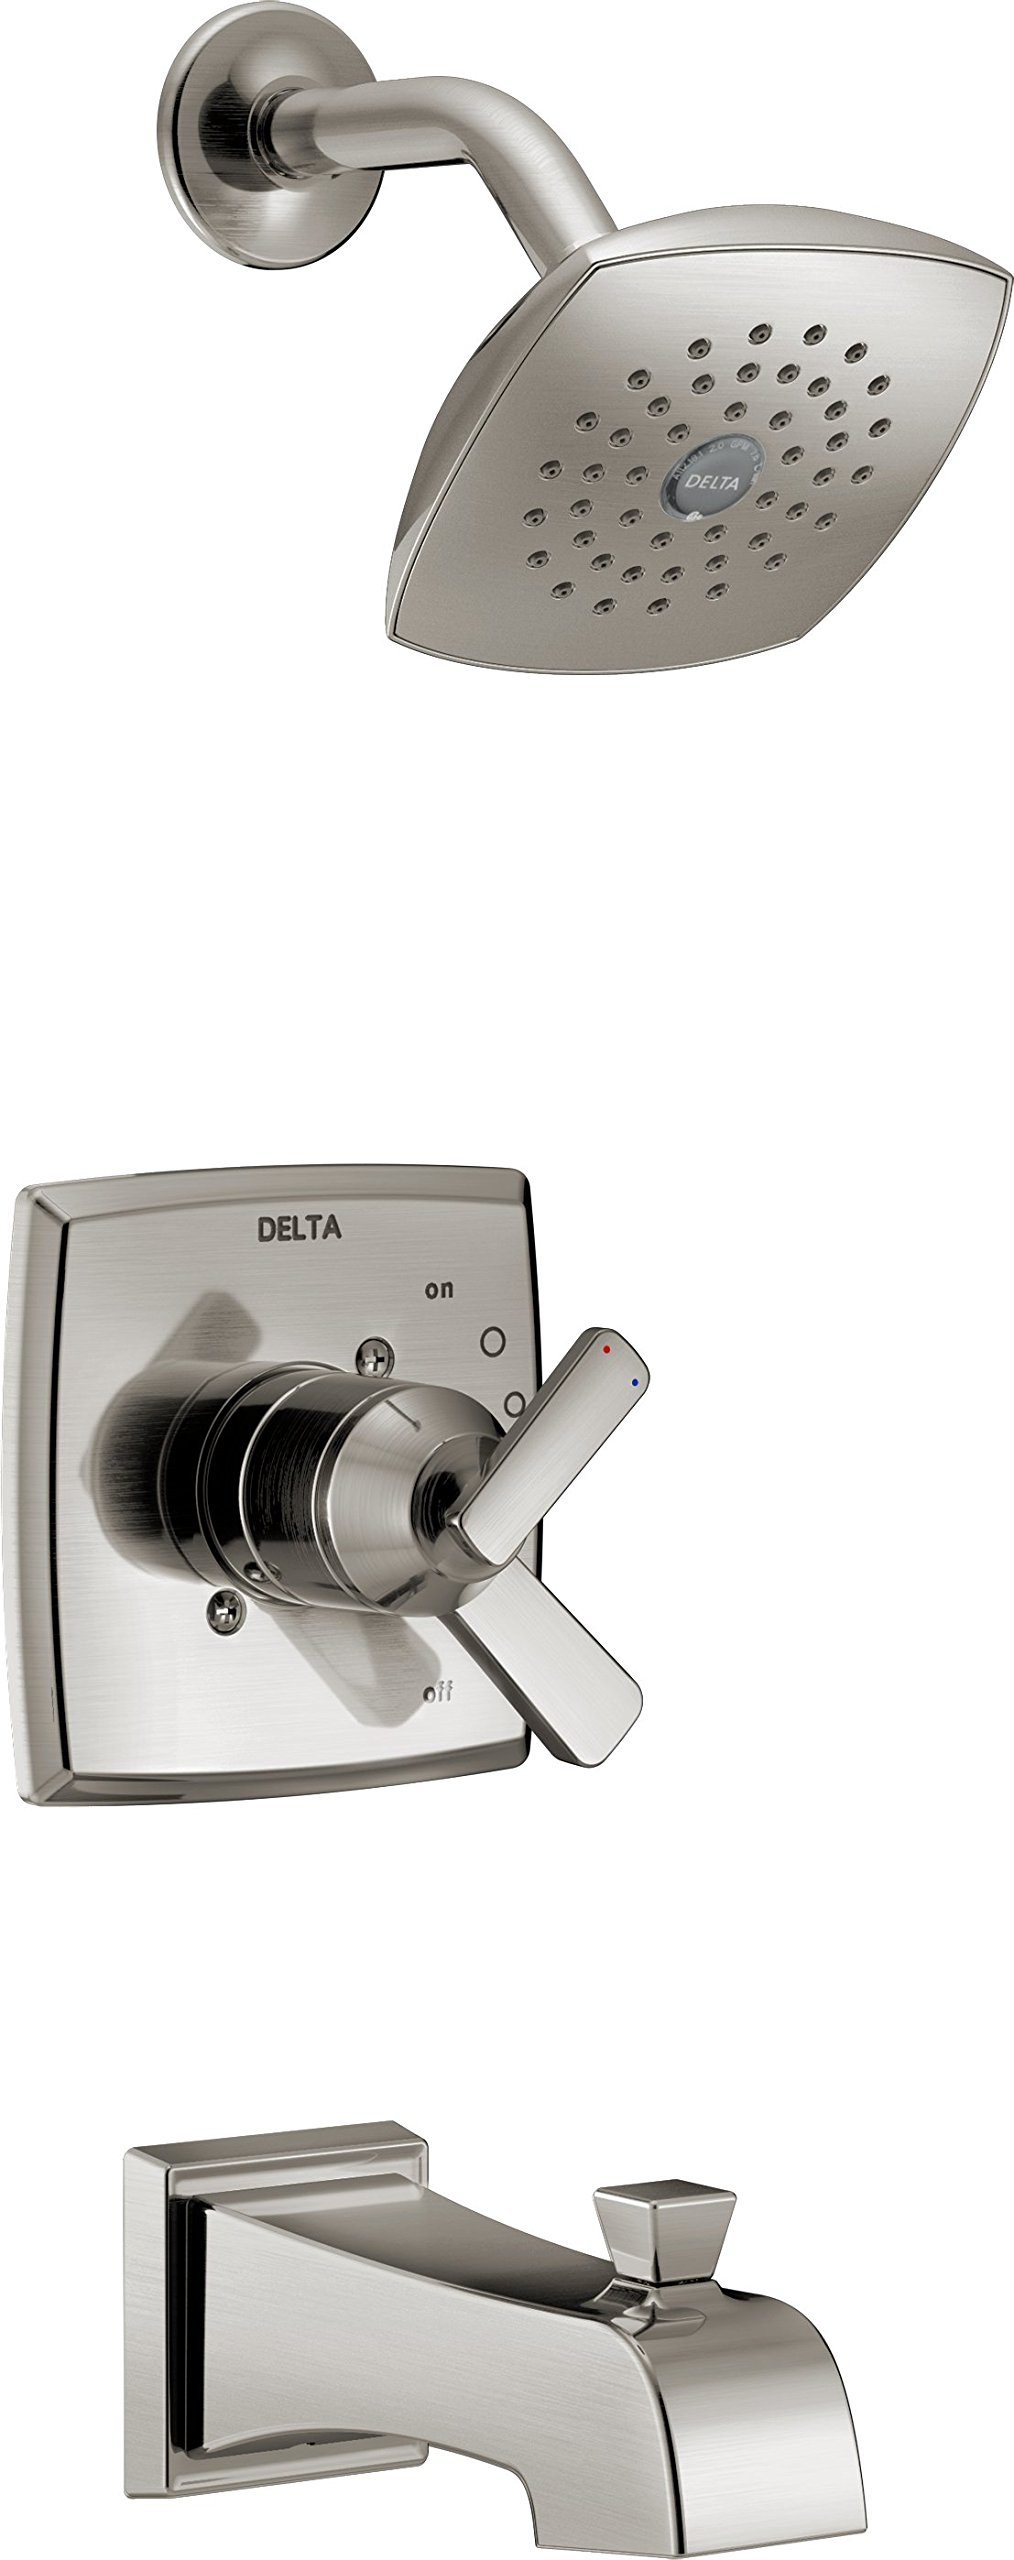 Delta T17464-SS Ashlyn Monitor 17 Series Tub & Shower Trim, Stainless by DELTA FAUCET